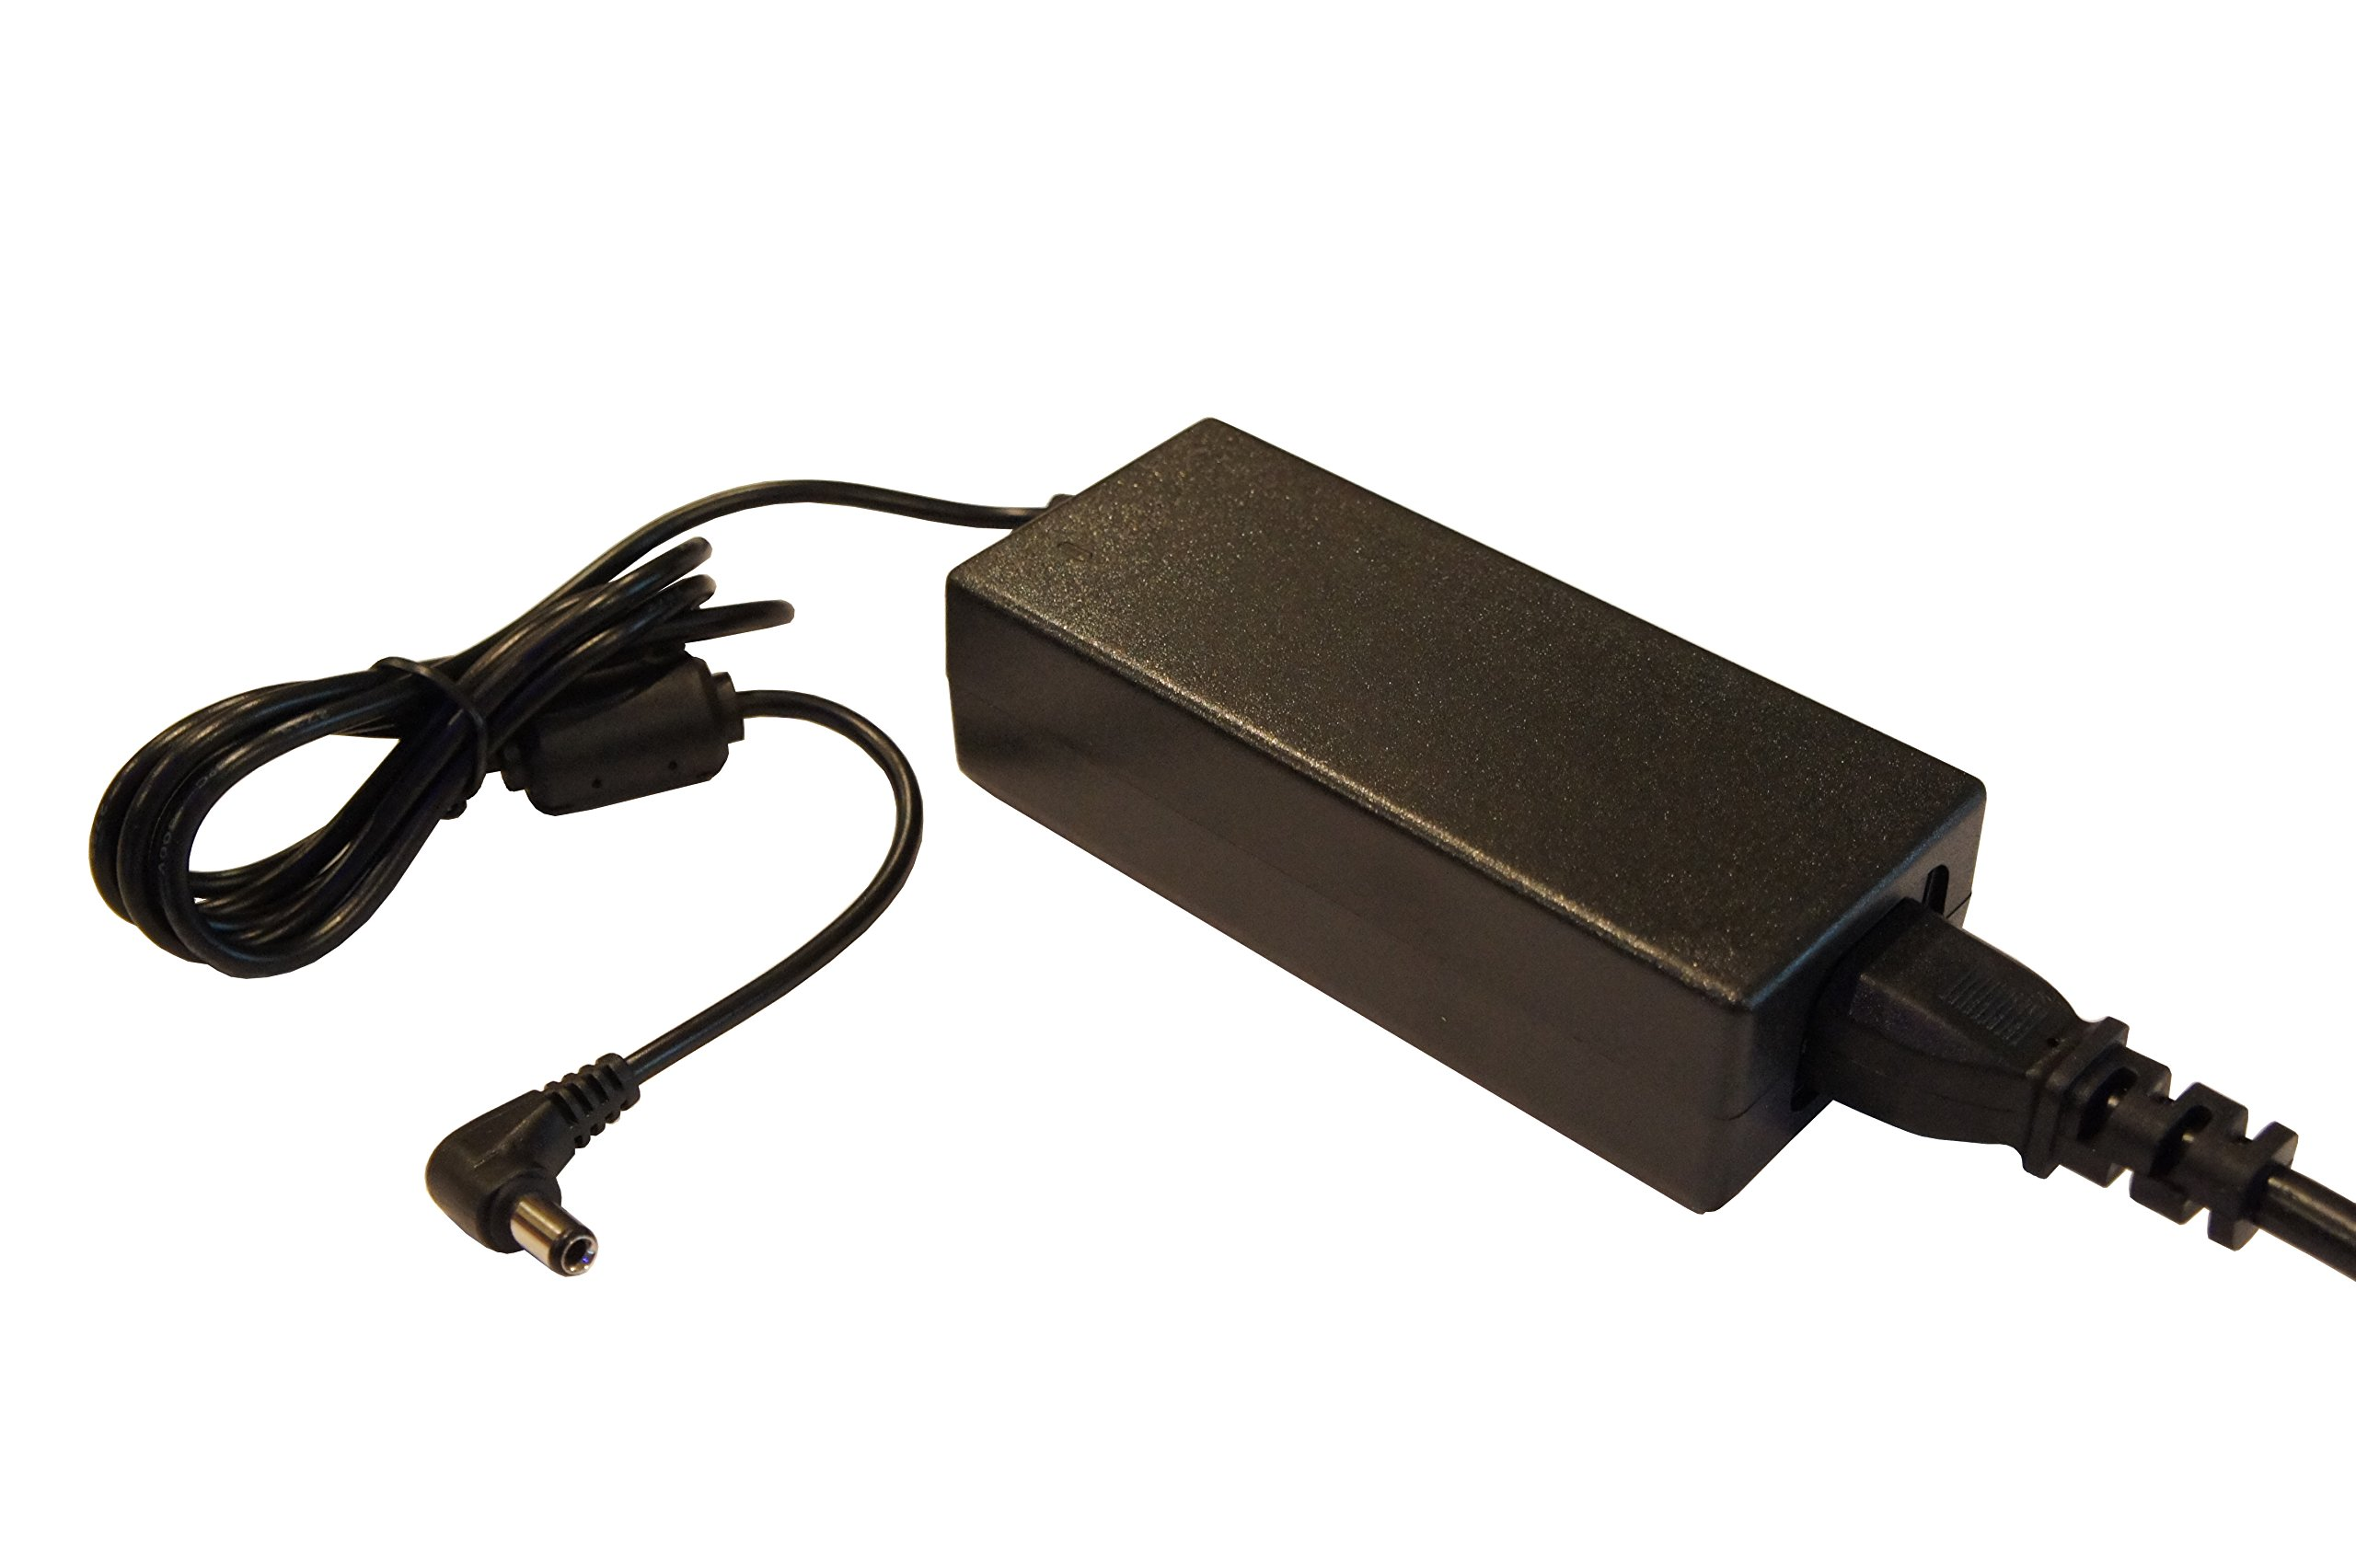 Power Supply AC DC adapter for Blackstar Fly 3 Guitar, Fly 3 Bass amplifier & Fly3 Guitar Bluetooth